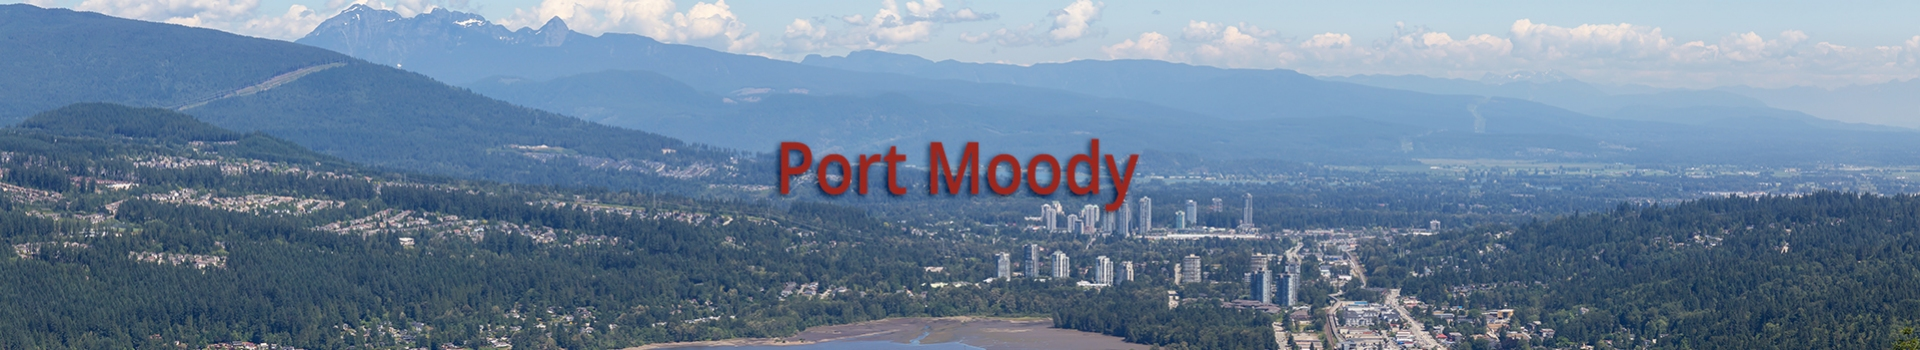 notary-public-services-port-moody